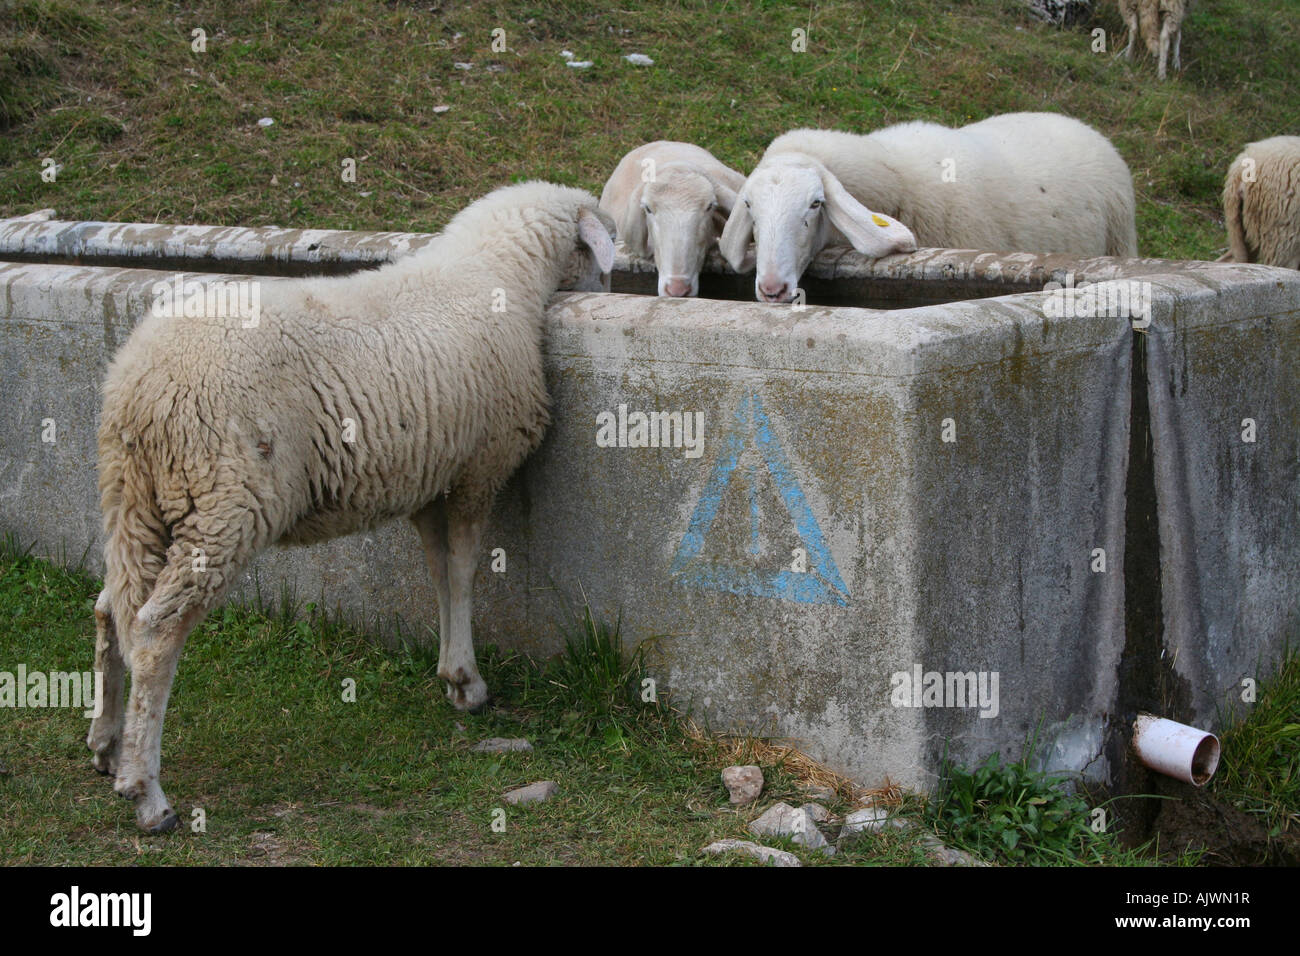 Sheep slaking their thirst at Rifugio Pian di Fontana, Dolomiti Bellunesi, Veneto, Italy - Stock Image